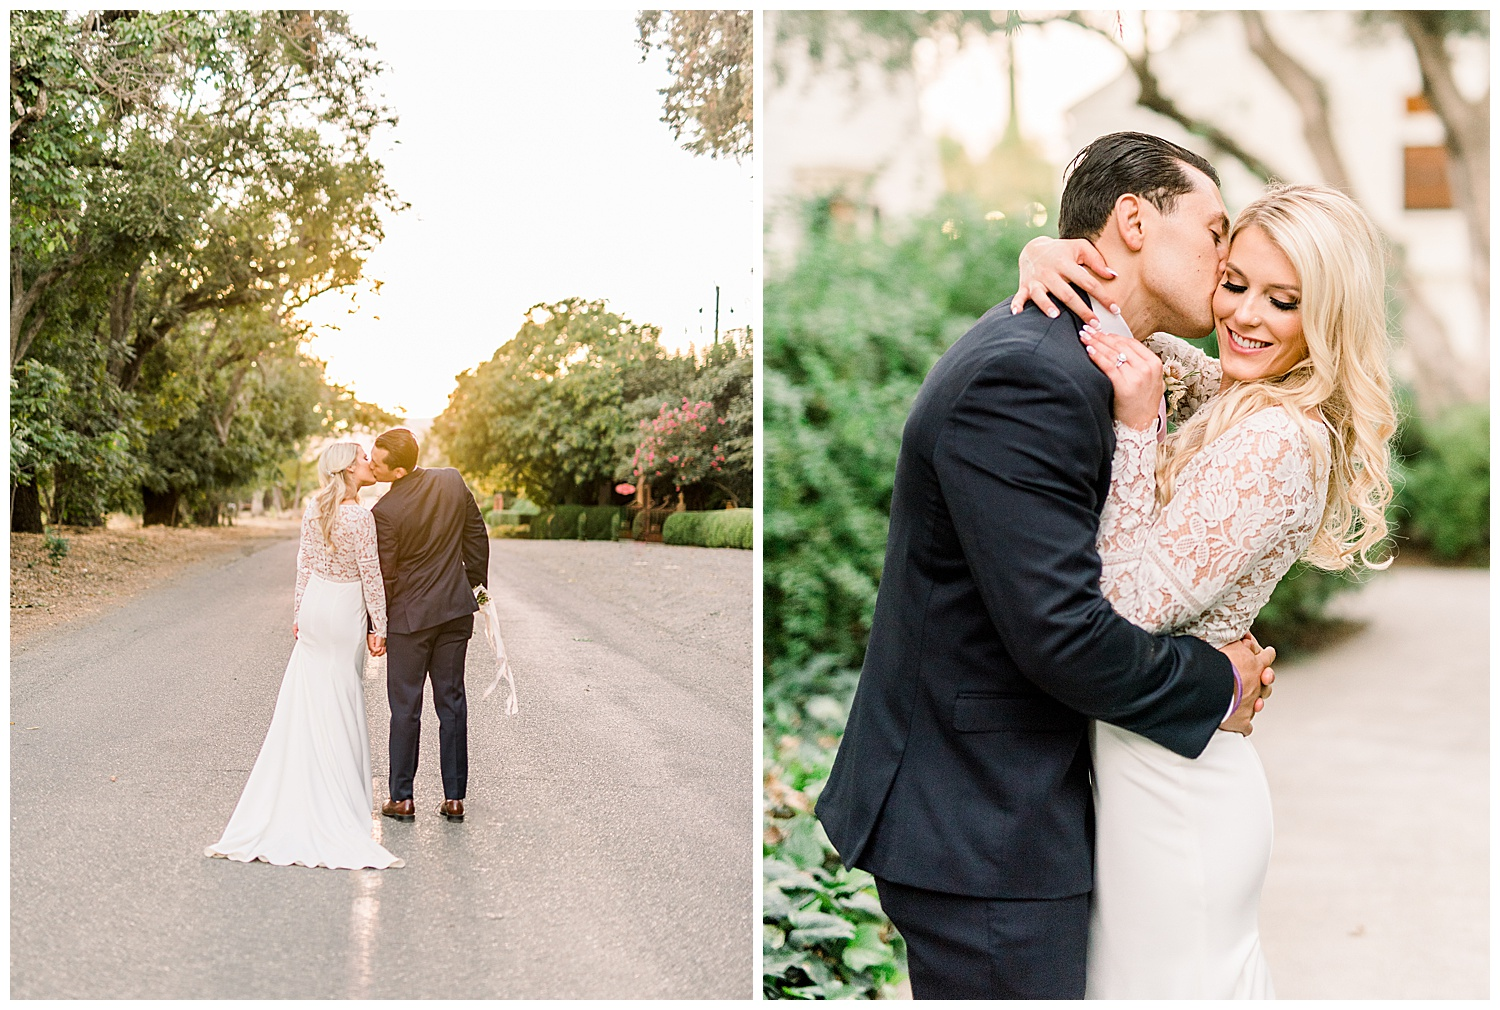 Janine_Licare_Photography_San_Francisco_Wedding_Photographer_Carneros_Tyge_Williams_Sonoma_Napa_0251.jpg